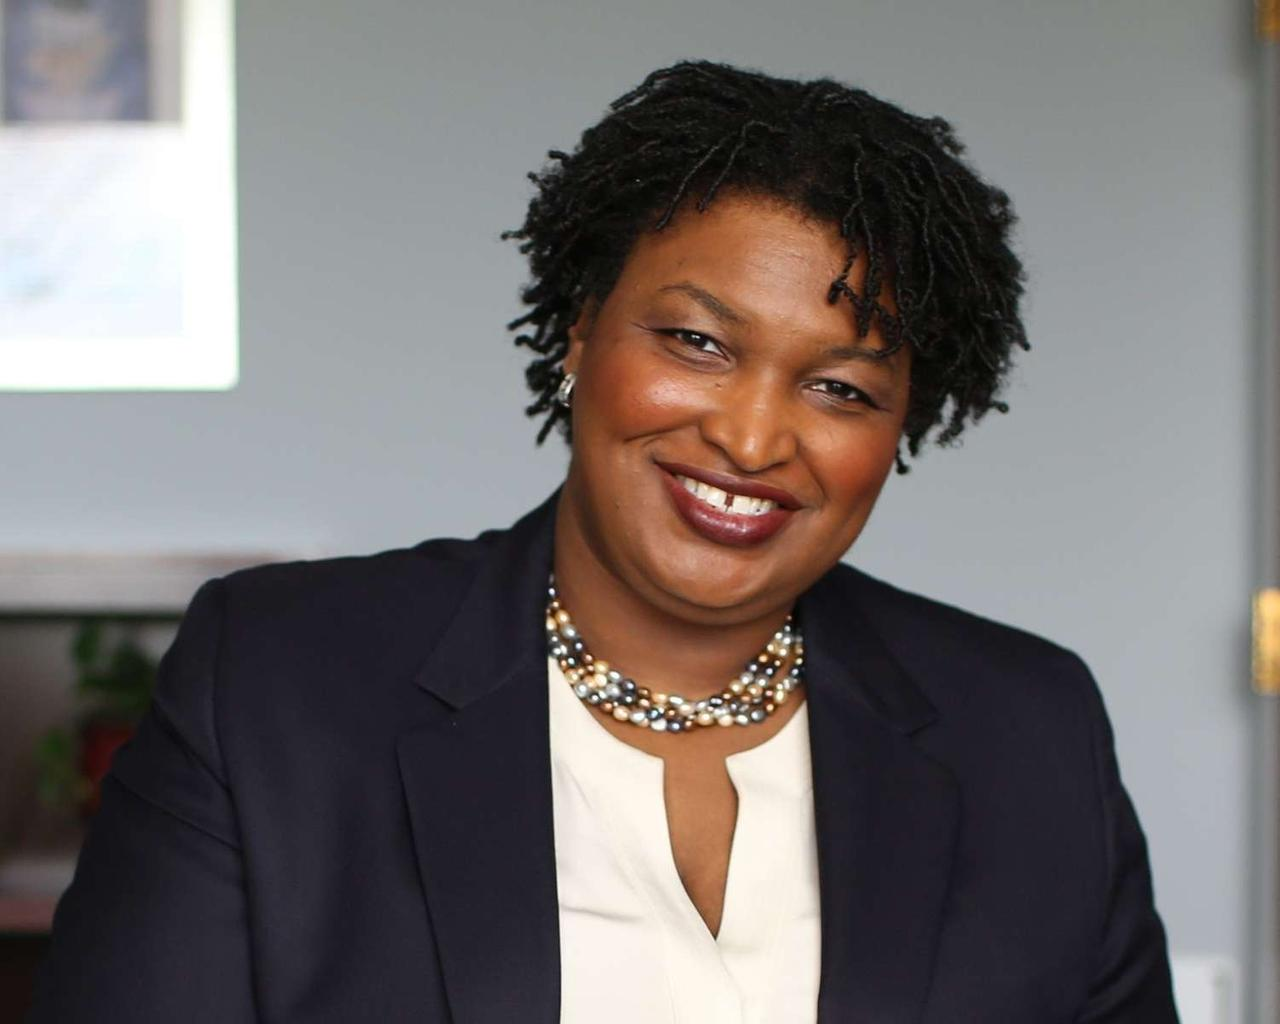 Stacey Abrams: Don't boycott corporations over voting rights yet. First press them to speak up.